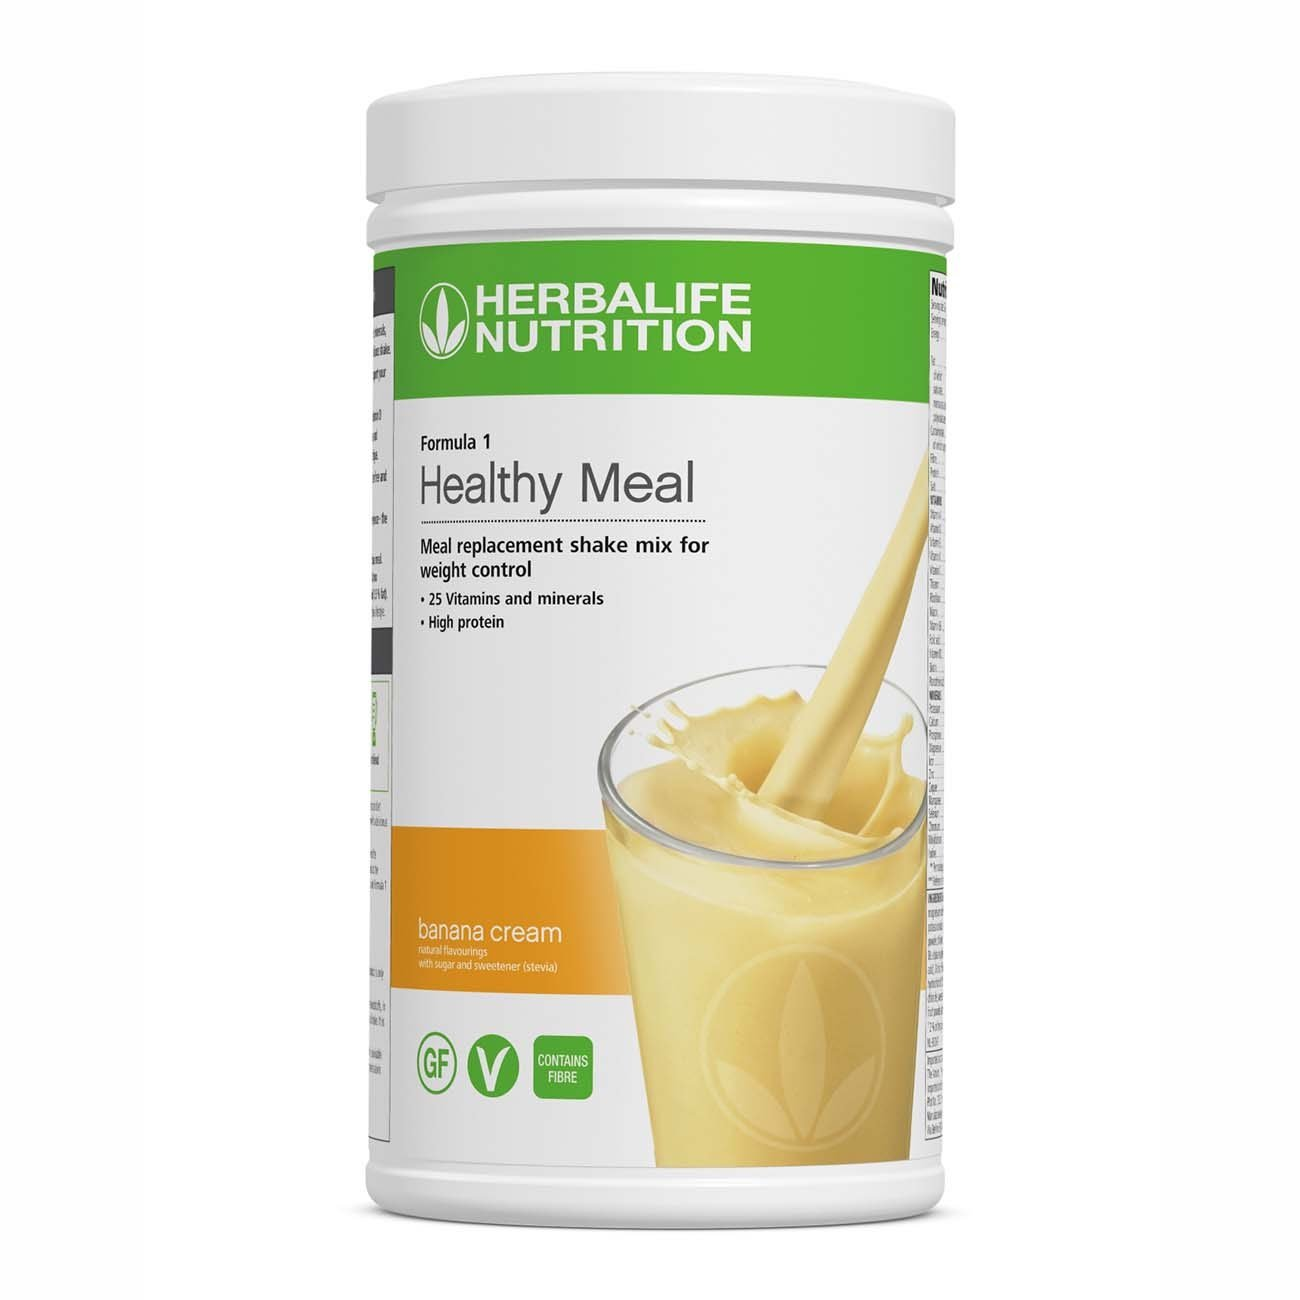 Herbalife Formula 1 - Banana Cream - Meal Replacement Protein Shake for Weight Loss (550g) - HerbaBOX